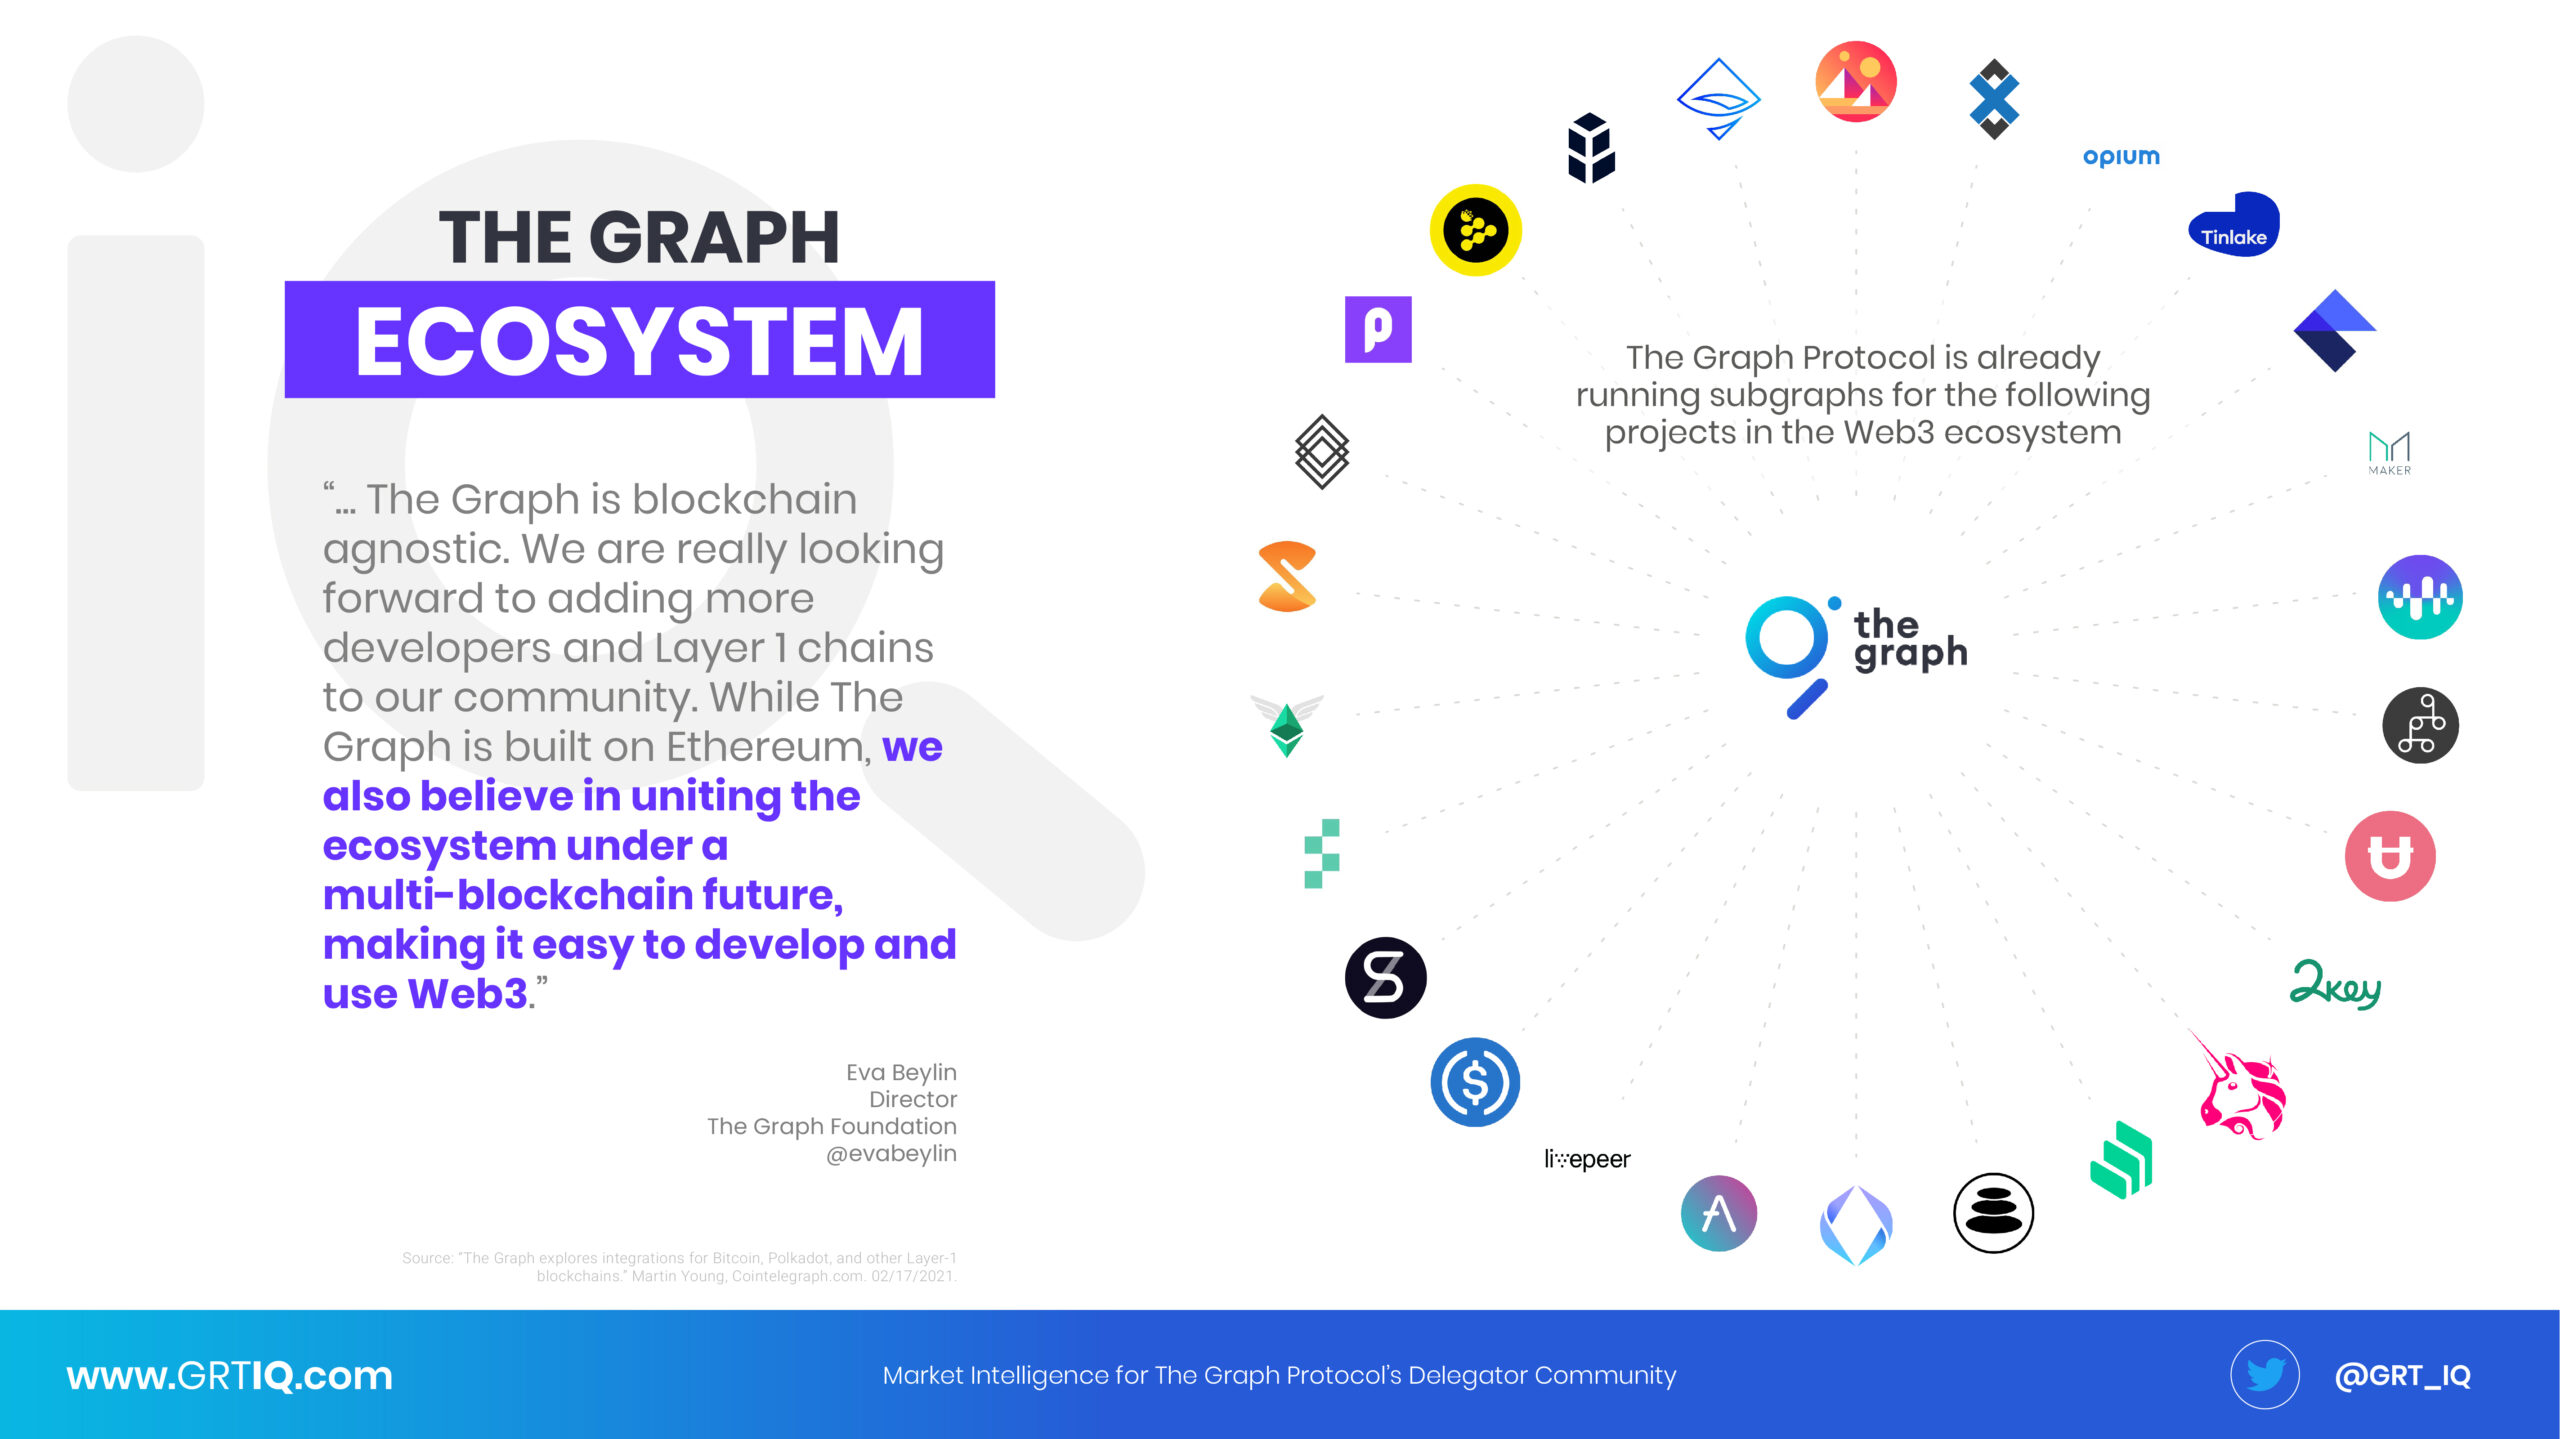 An illustration of The Graph Protocol's ecosystem and the partners who utilize their indexing and querying services.